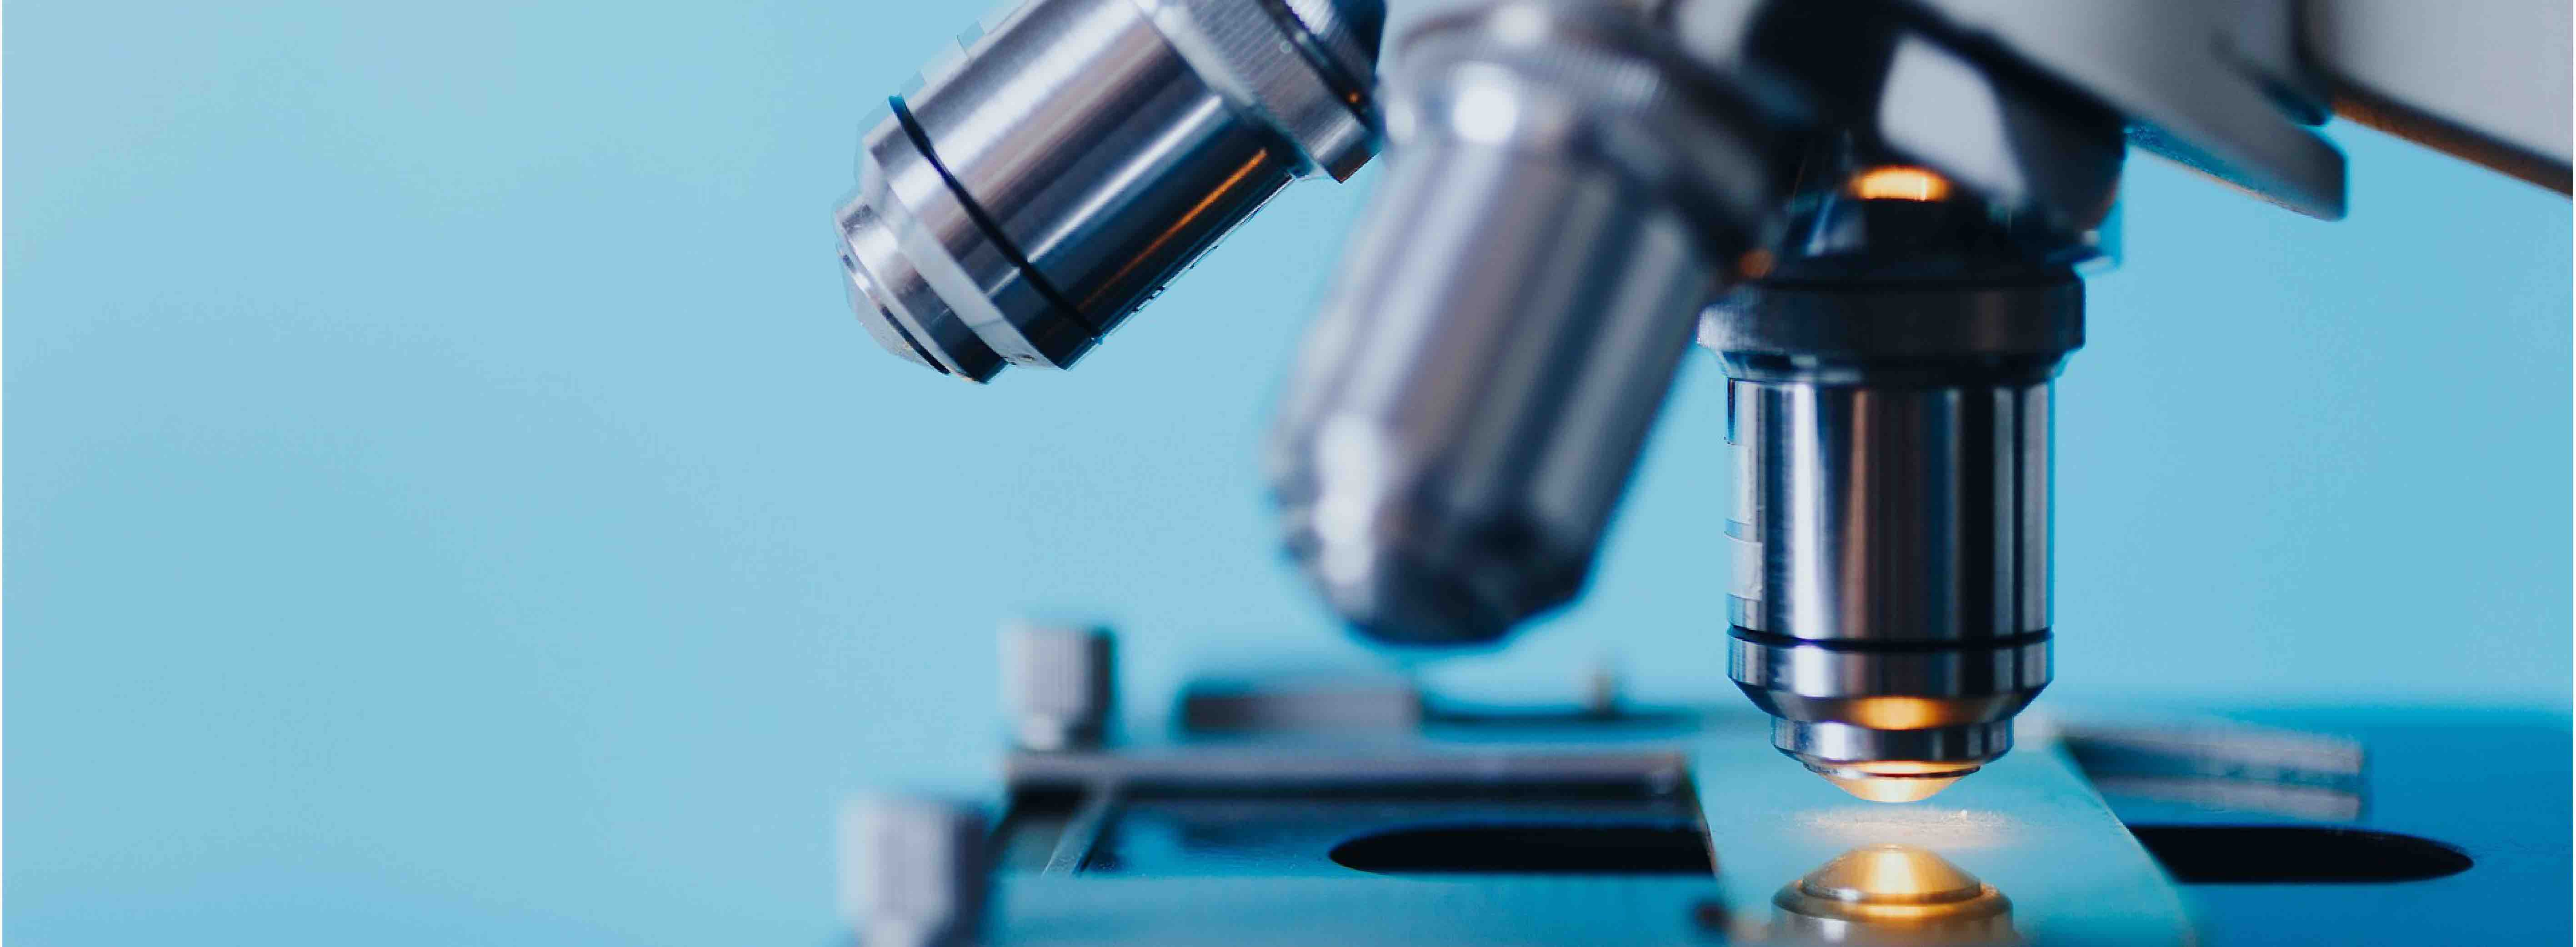 Image of a microscope in front of a blue background